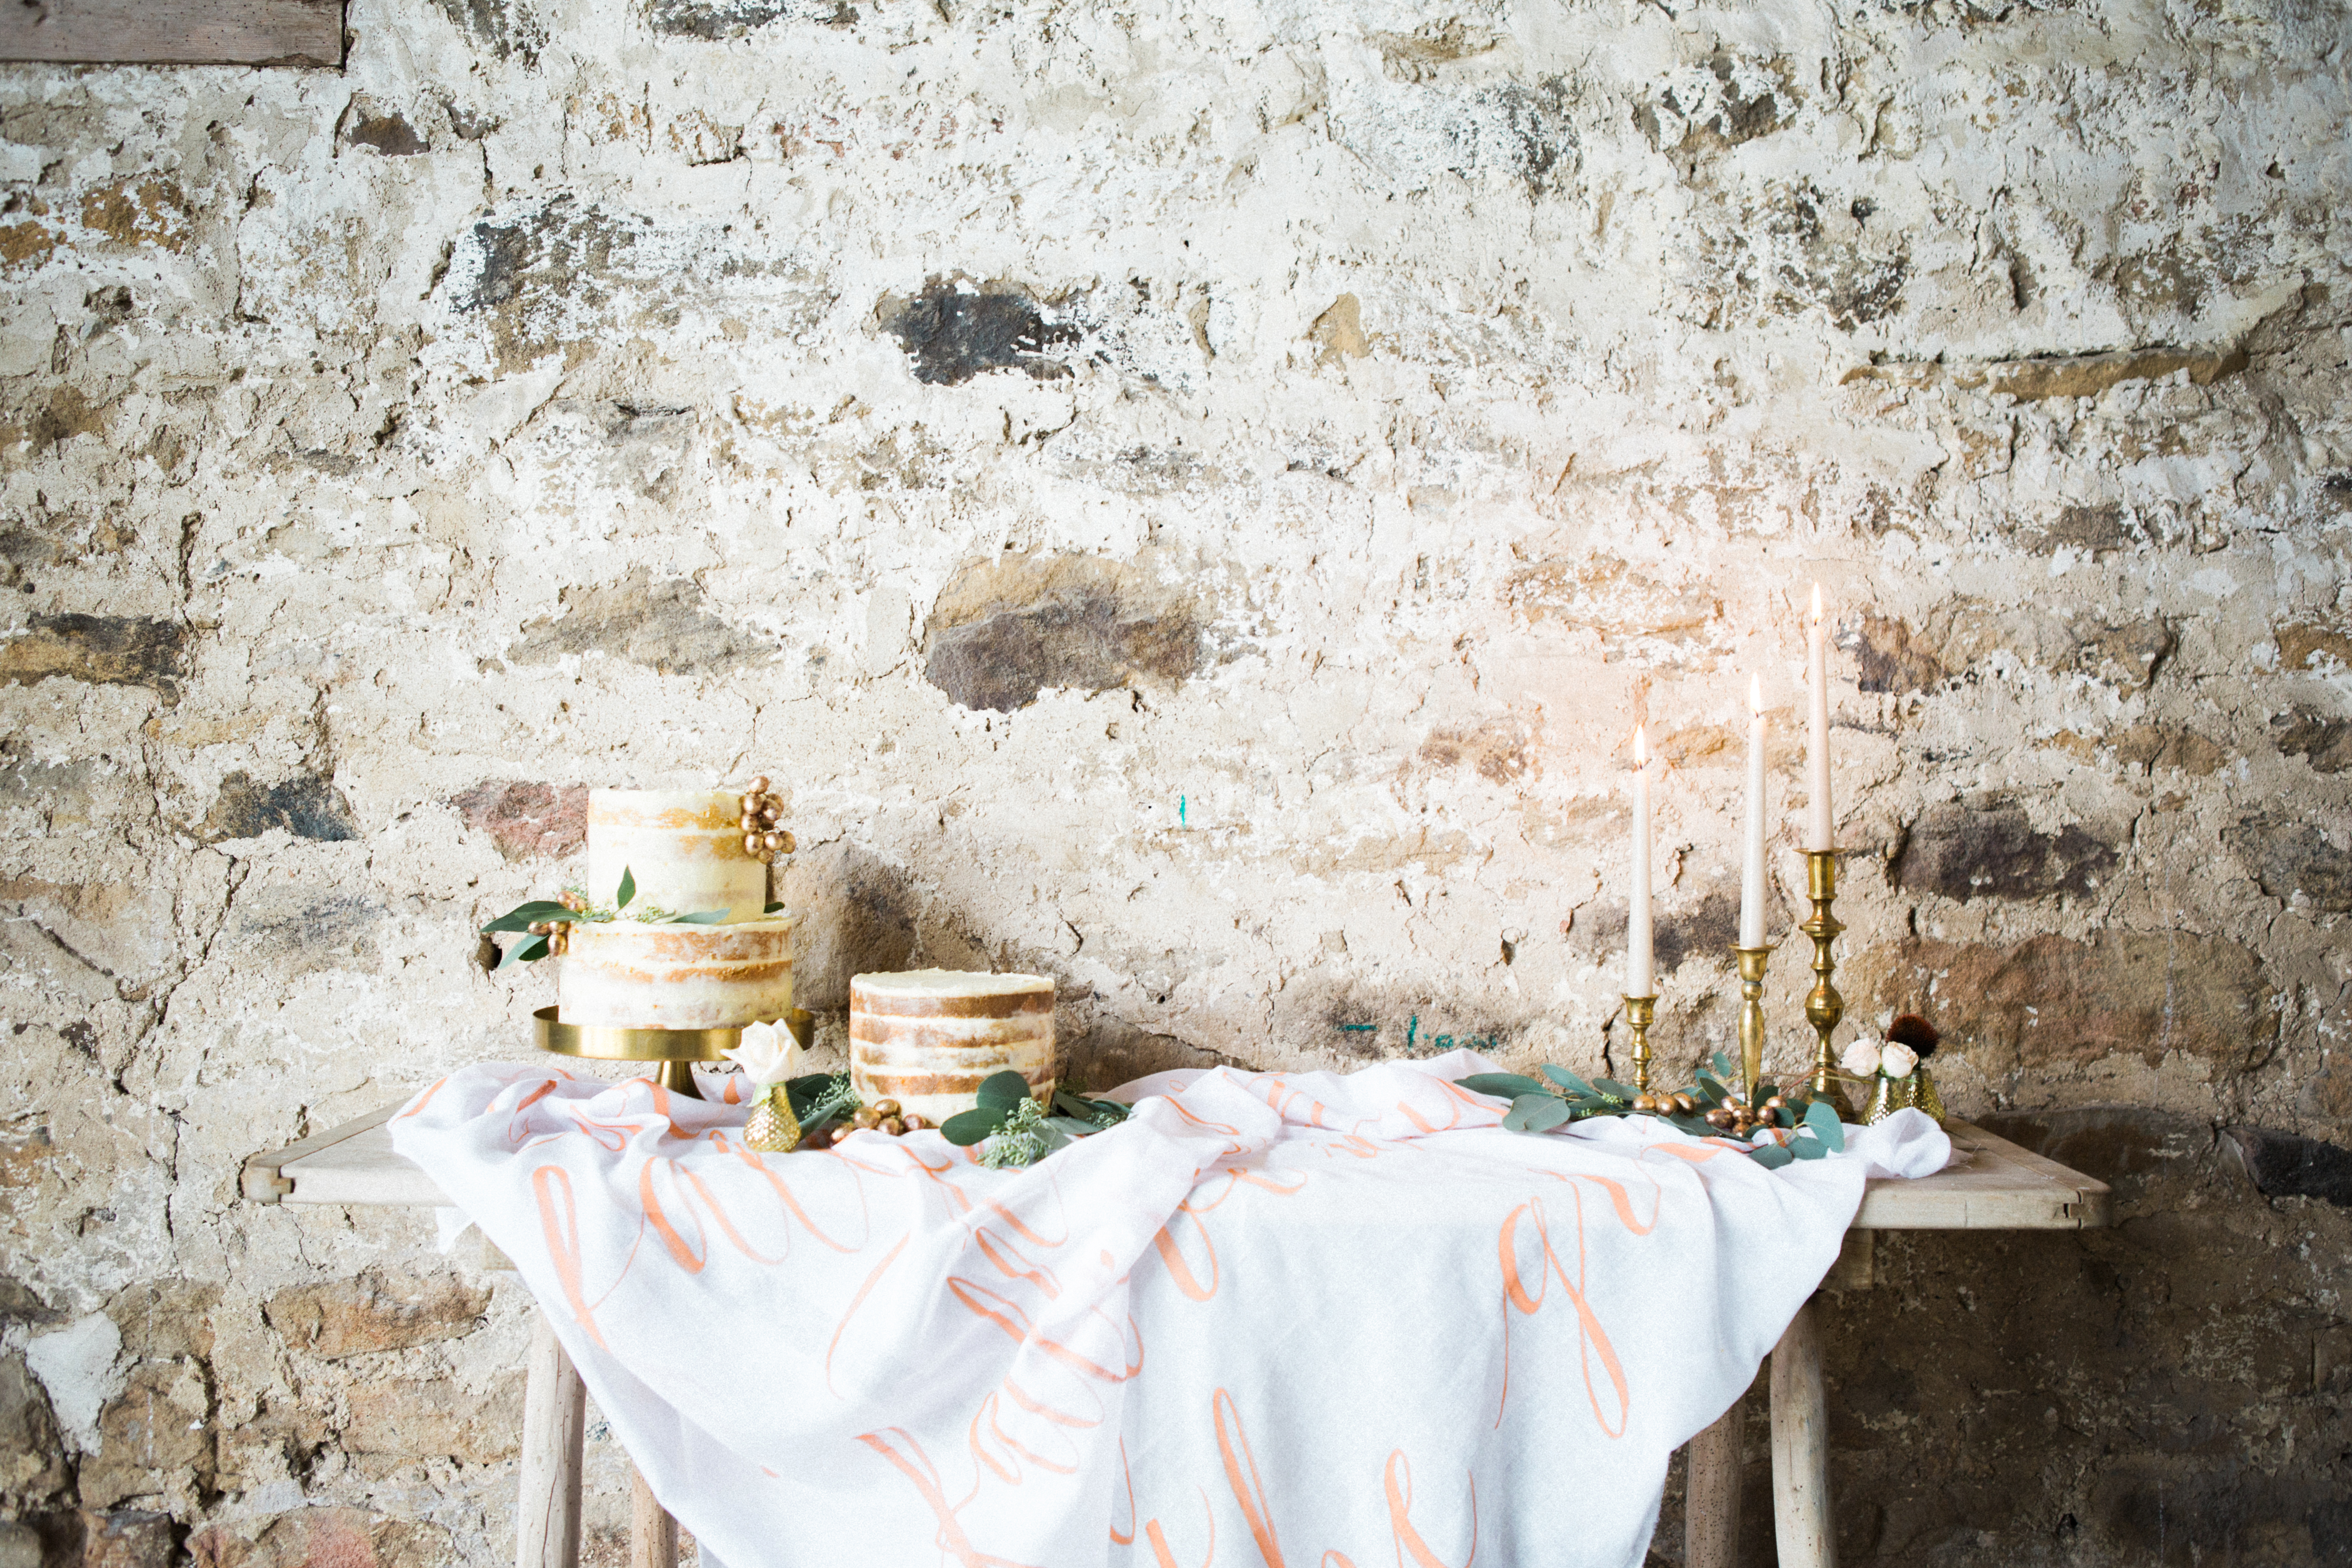 dessert table of wedding cakes against a barn brick wall with rustic taper candles